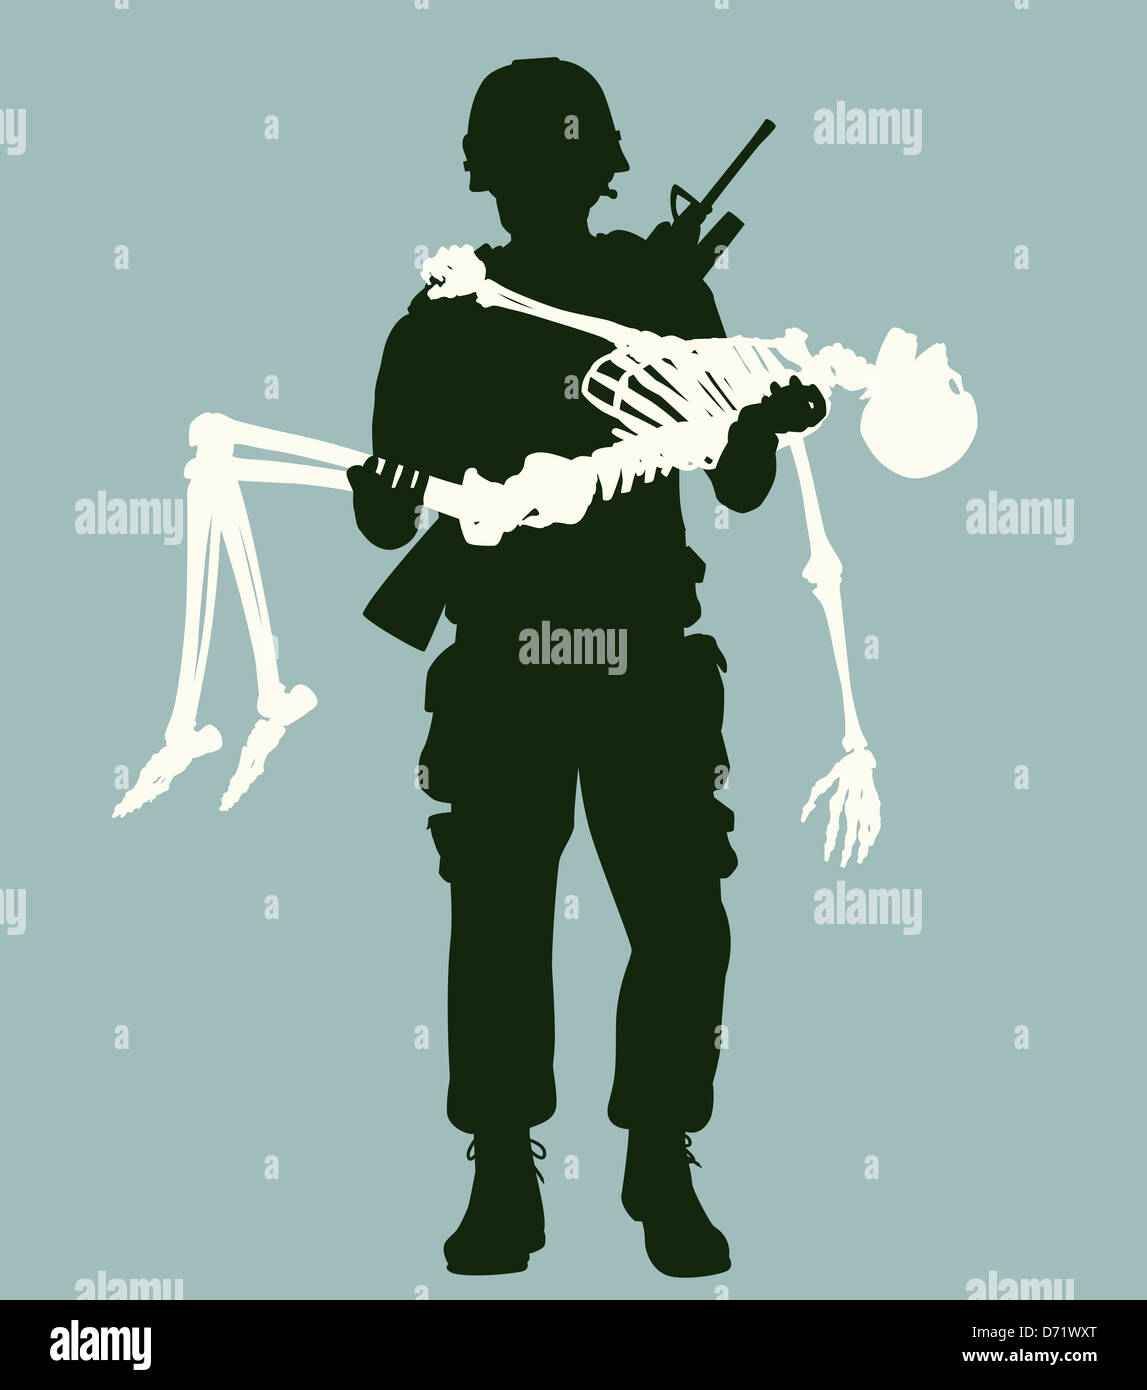 Illustration of a soldier carrying a skeleton in his arms - Stock Image